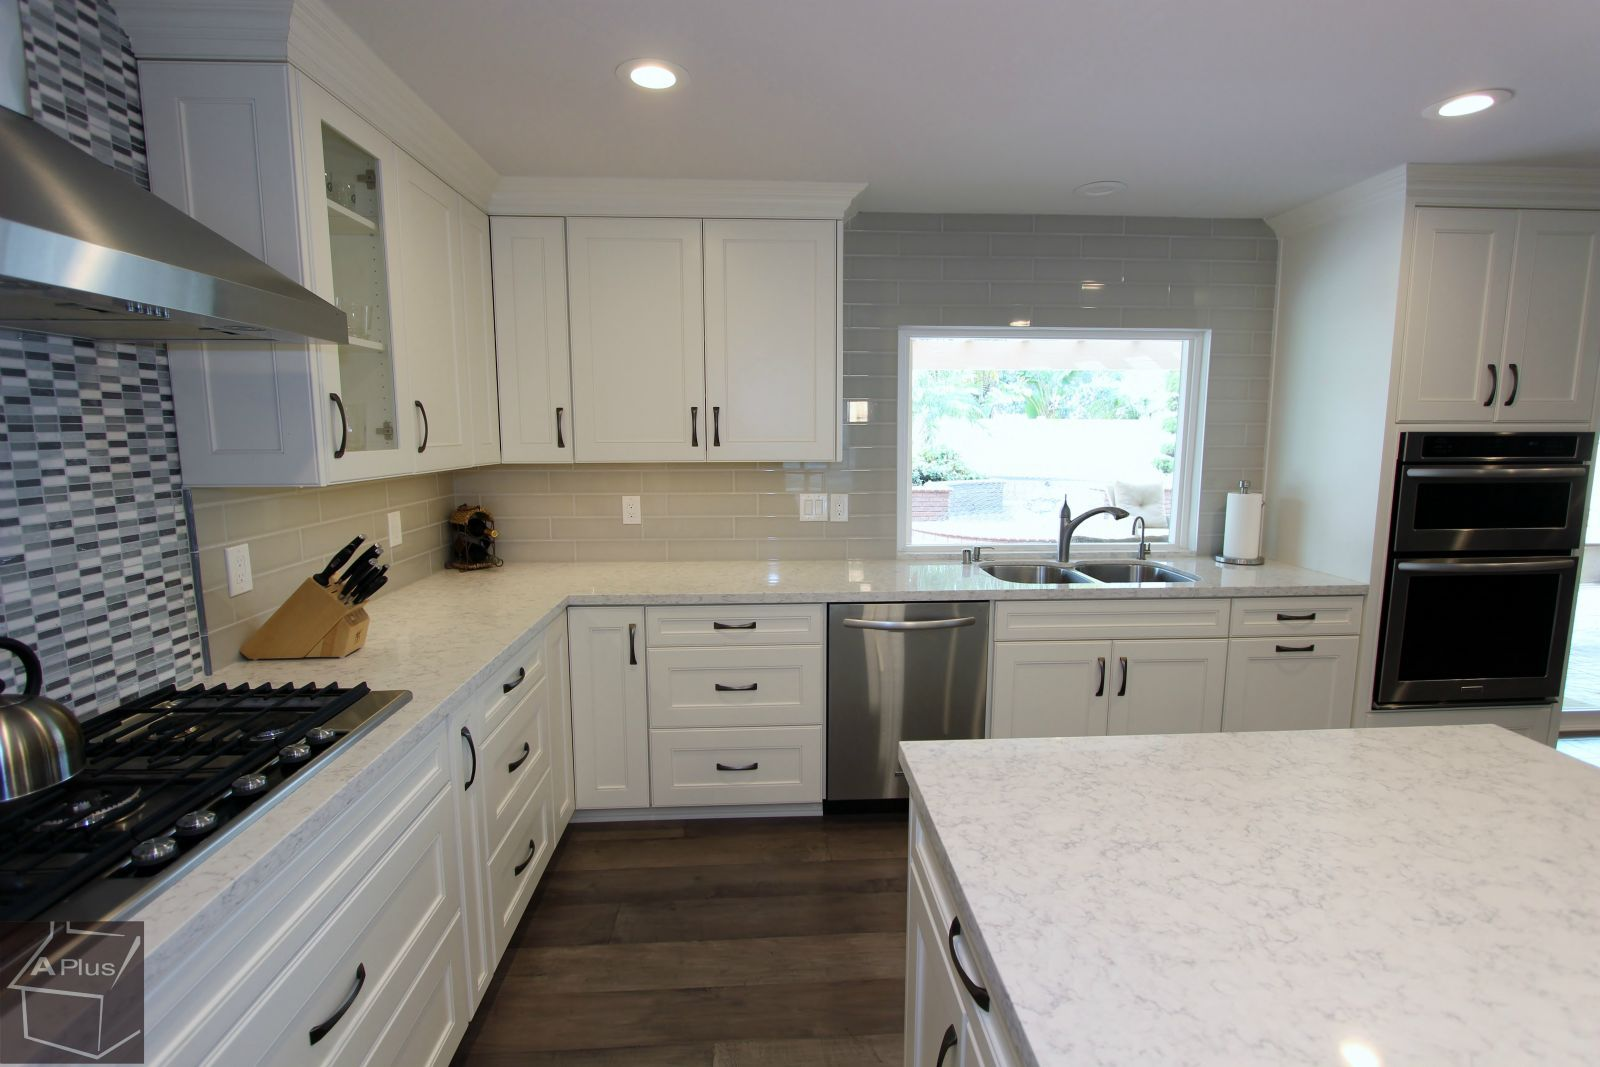 transitional kitchen & home remodel with custom white #cabinets in